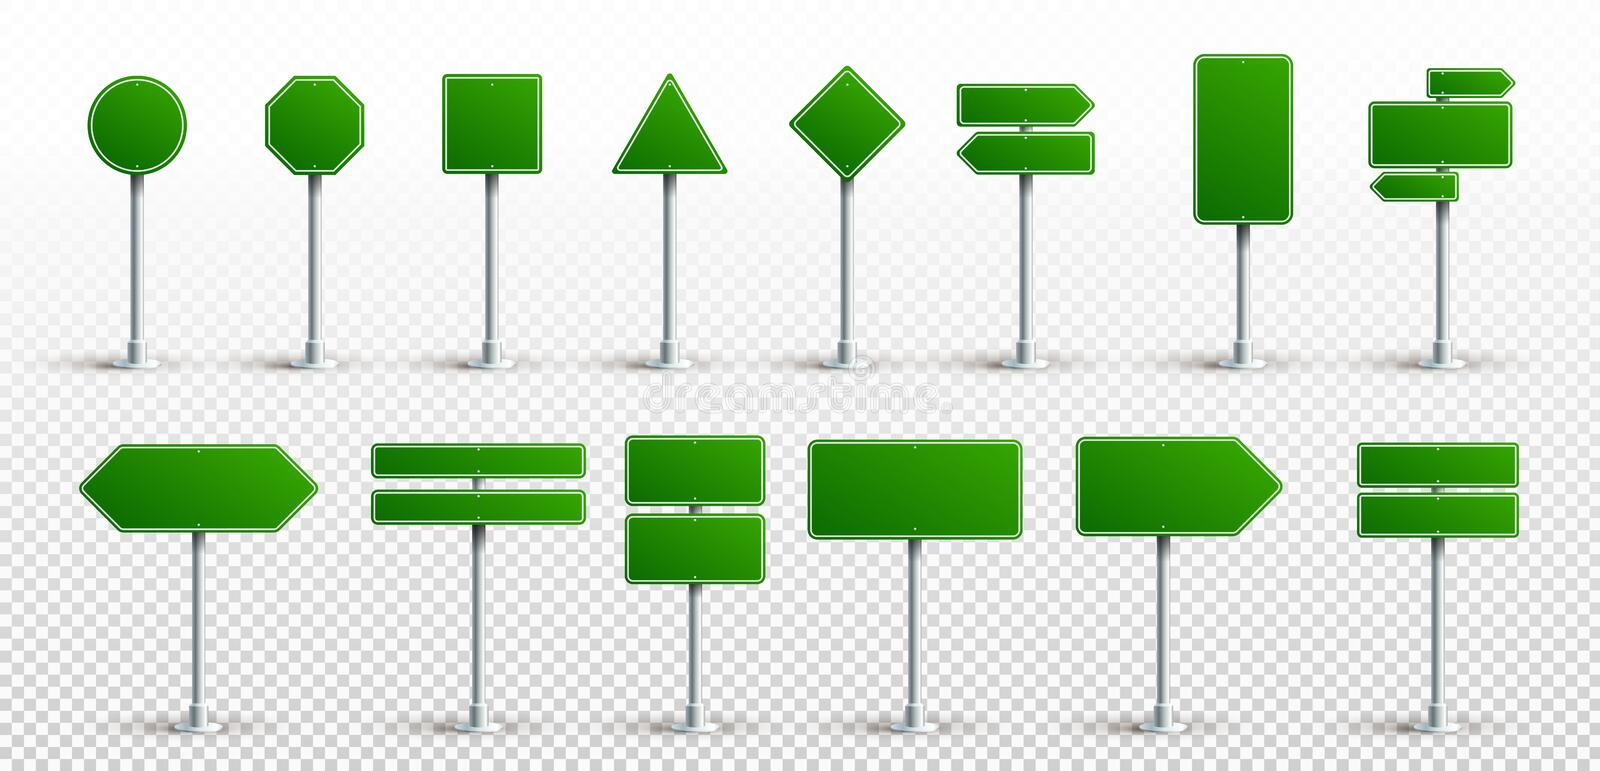 Set Of Green Traffic Signs. Road Board Text Panel, Mockup Signage Direction Highway City Signpost Location Street Arrow Way. royalty free illustration